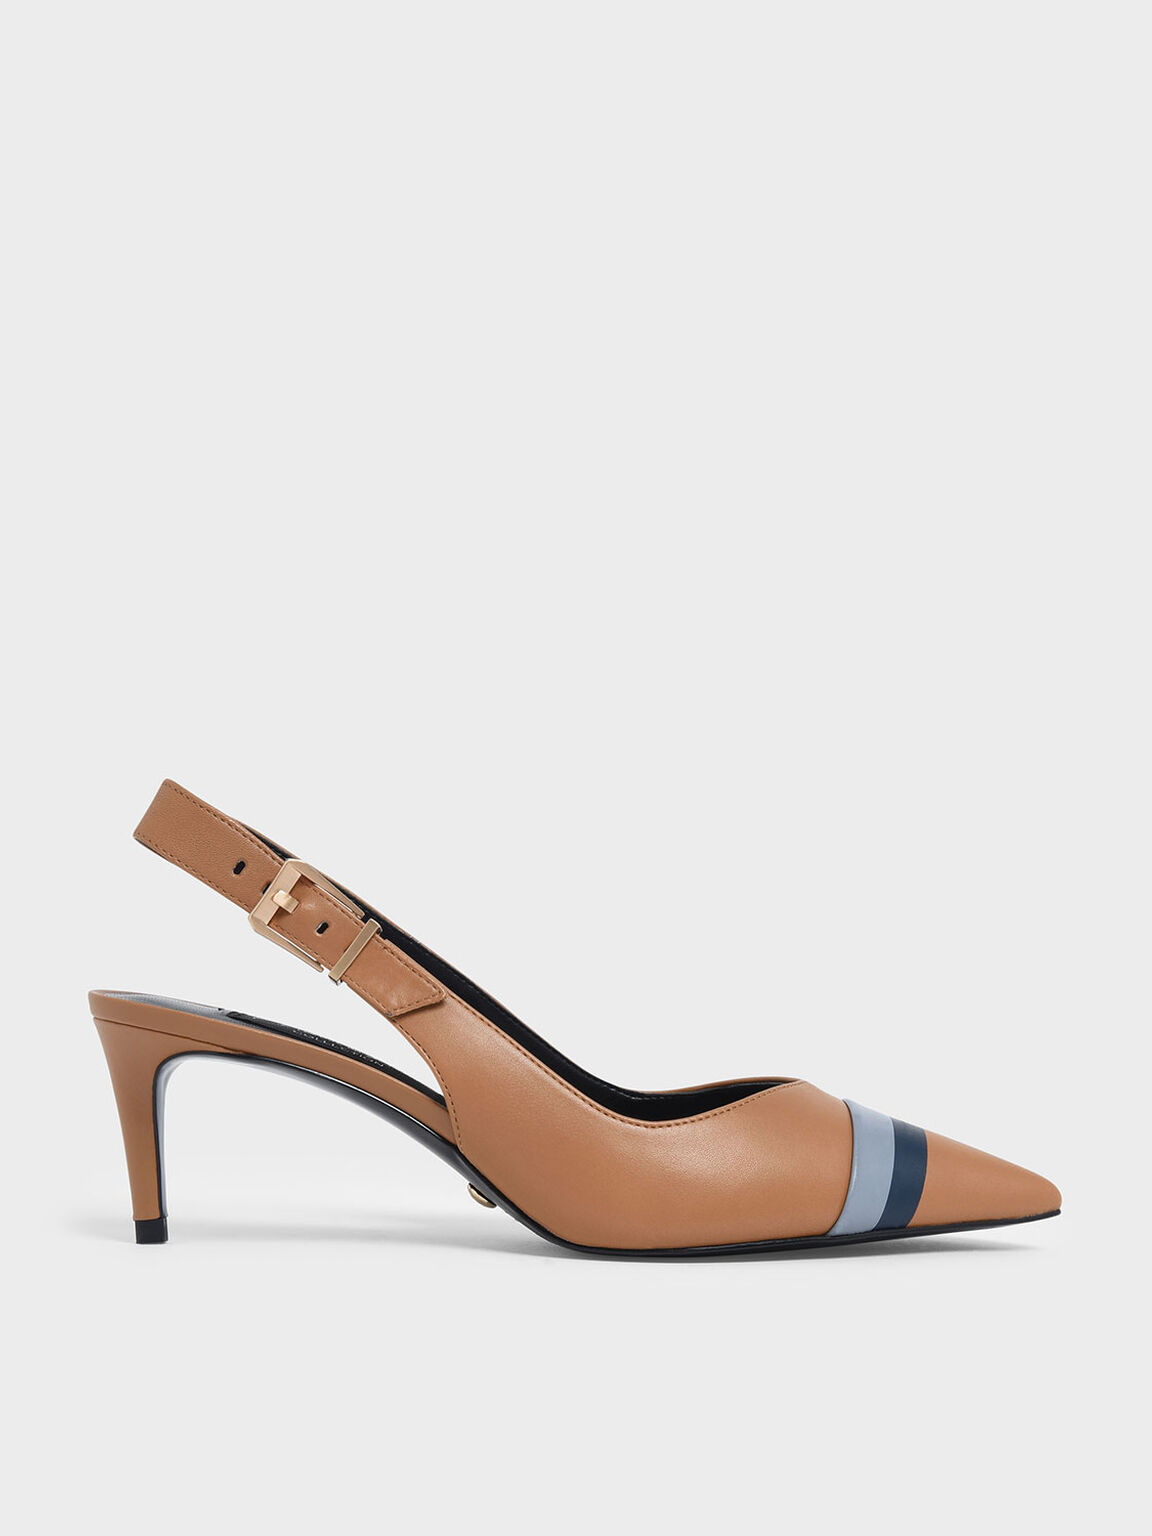 Striped Leather Slingback Heels, Caramel, hi-res